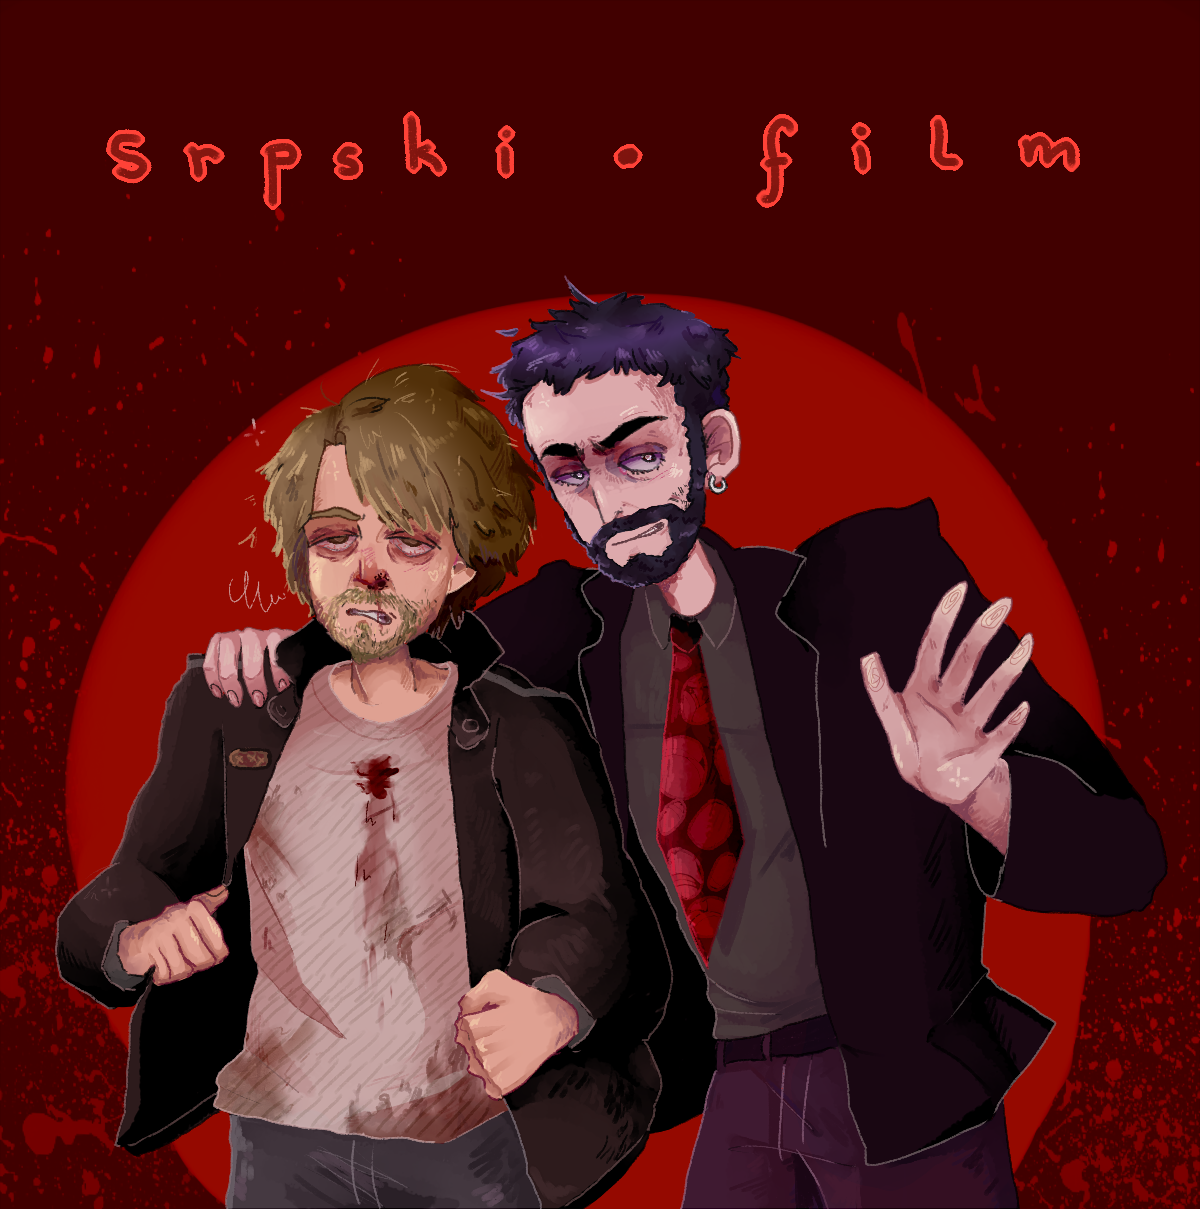 a serbian film by apostolovaa